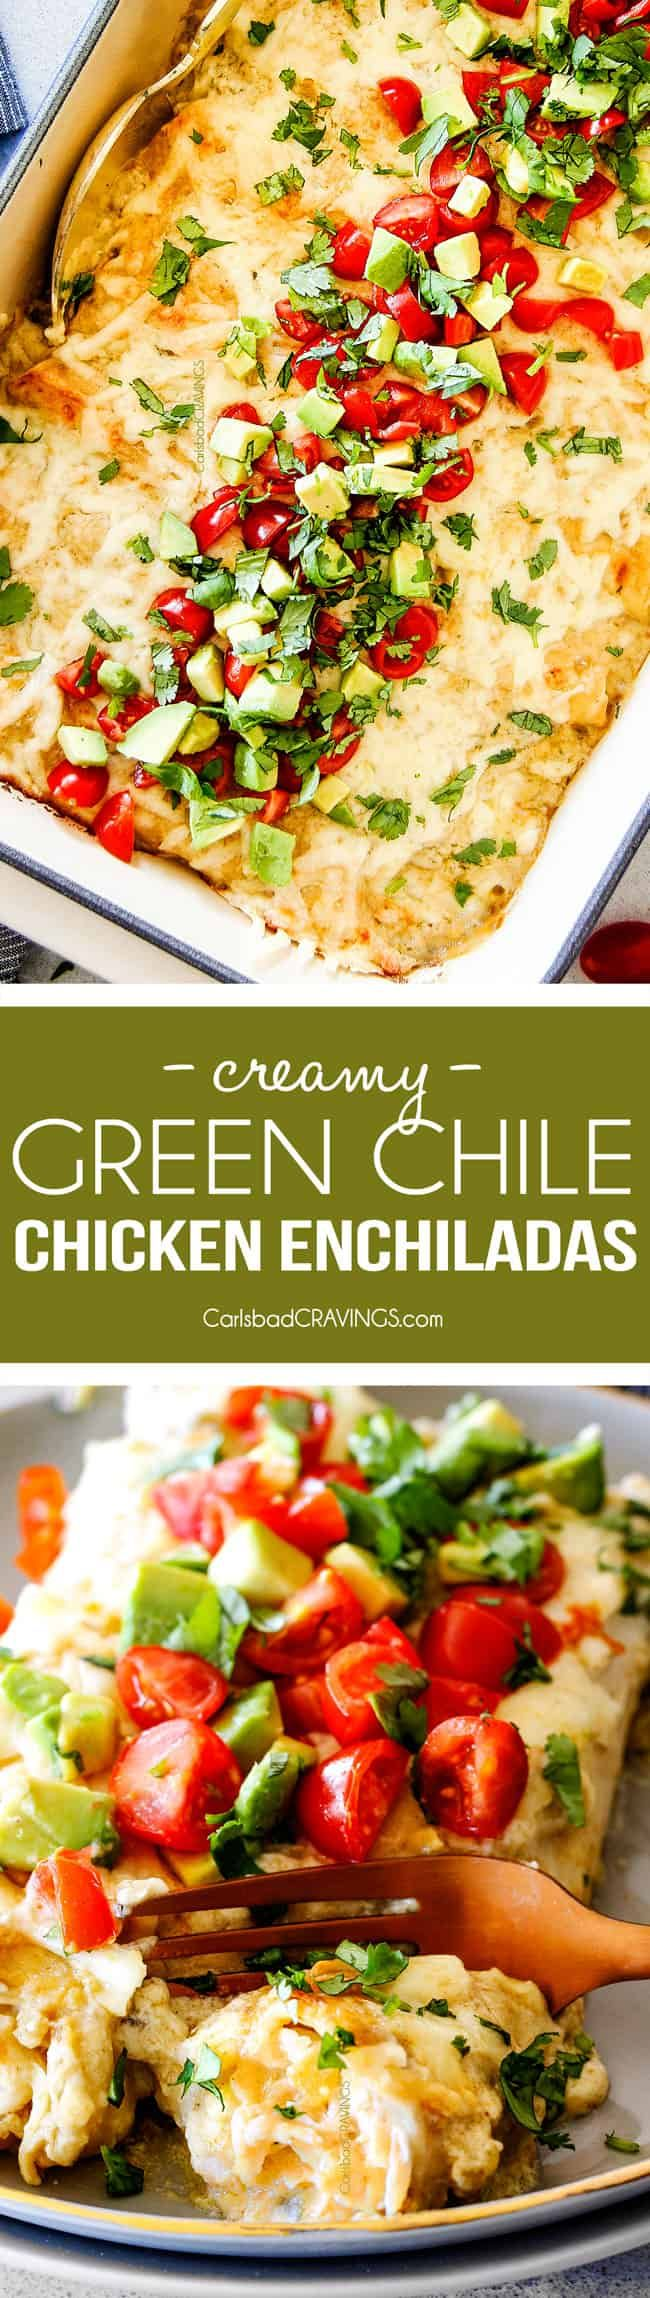 These are the BEST Green Chile Chicken Enchiladas I have ever had!!! They are easy to make, satisfyingly rich, cheesy, creamy and saucy - no dry chicken enchiladas here! And the homemade green chile sour cream white sauceis out of this world! via @carlsbadcraving